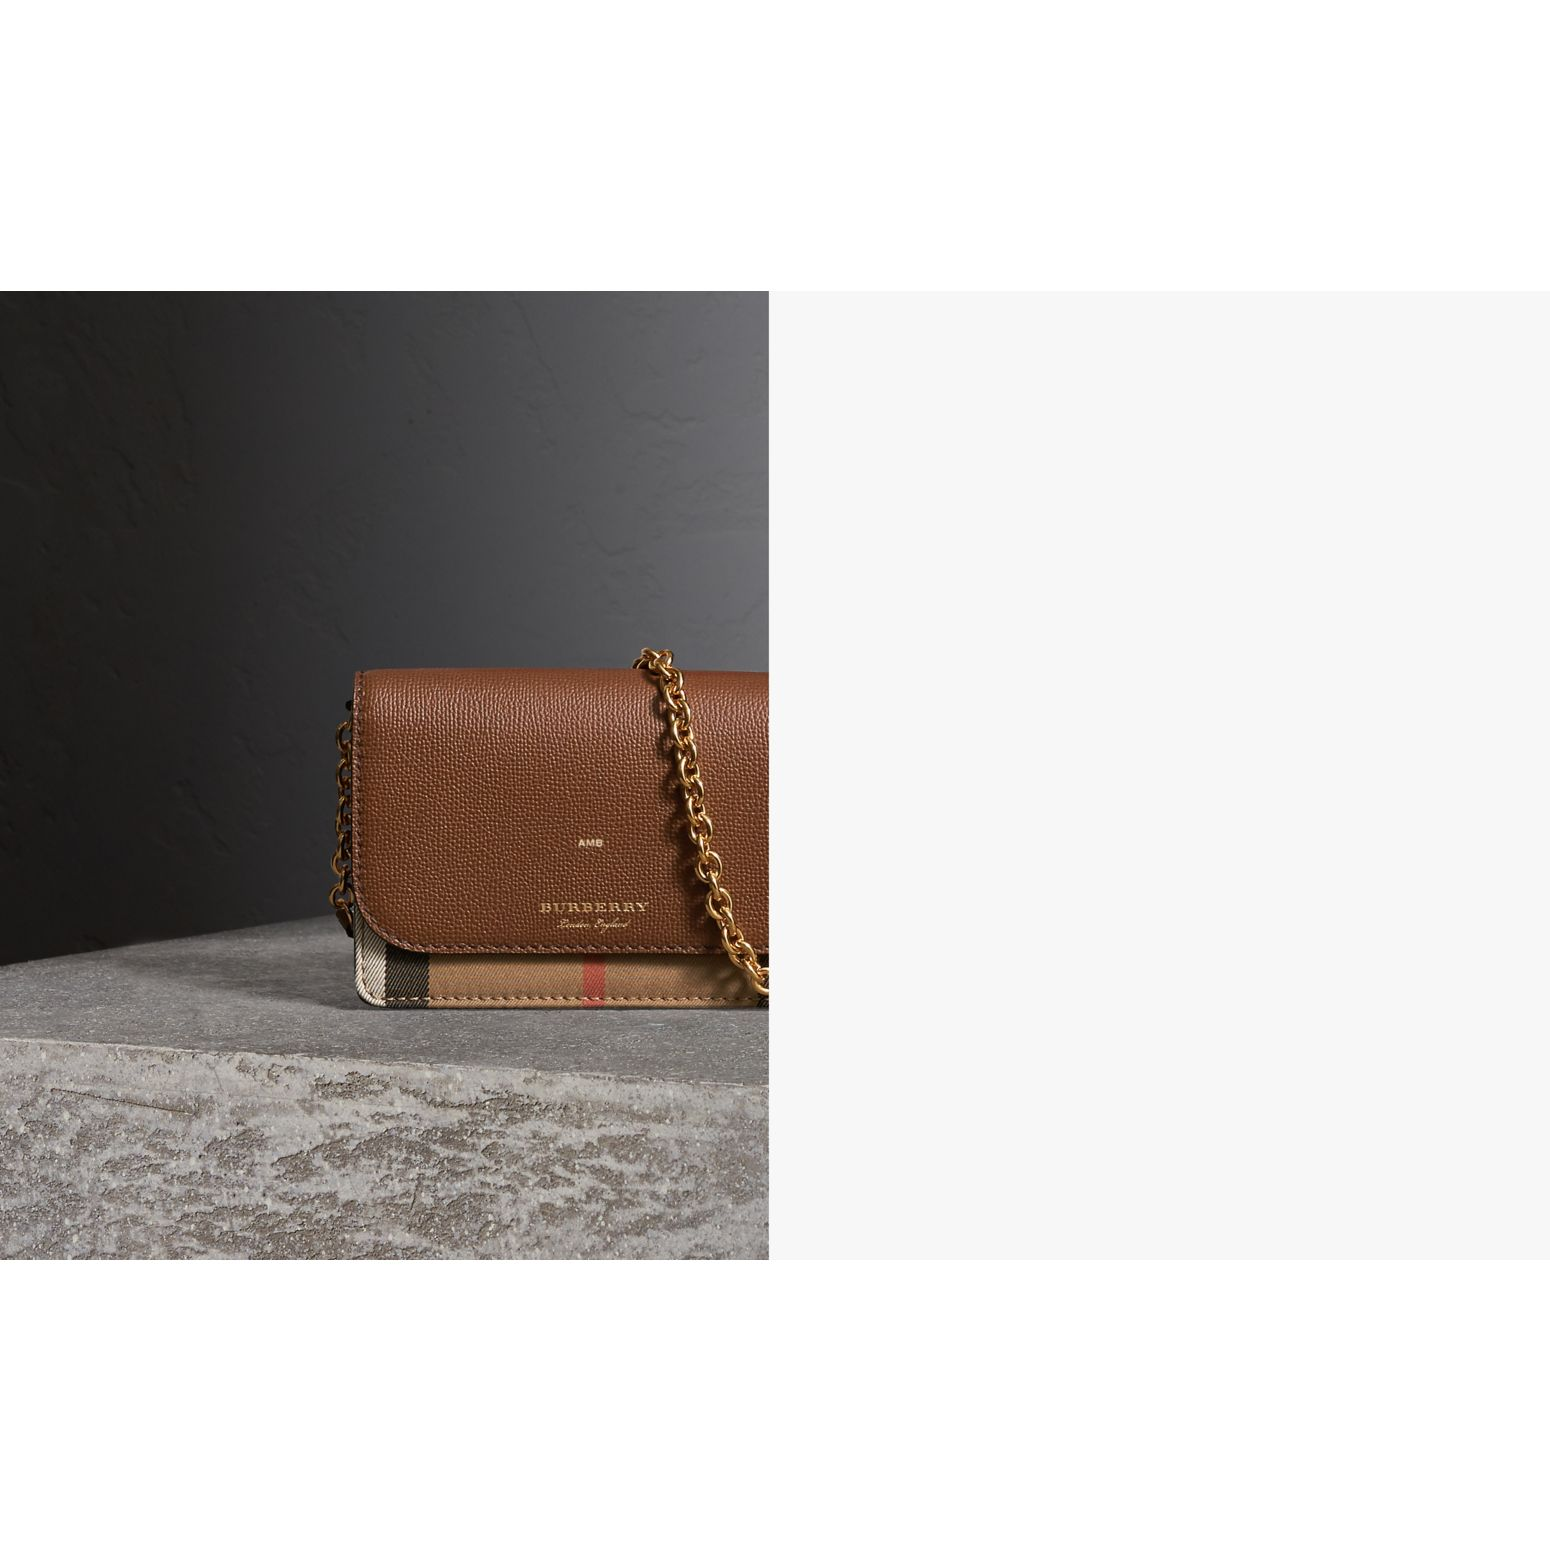 Leather and House Check Wallet with Detachable Strap in Tan - Women | Burberry - gallery image 1